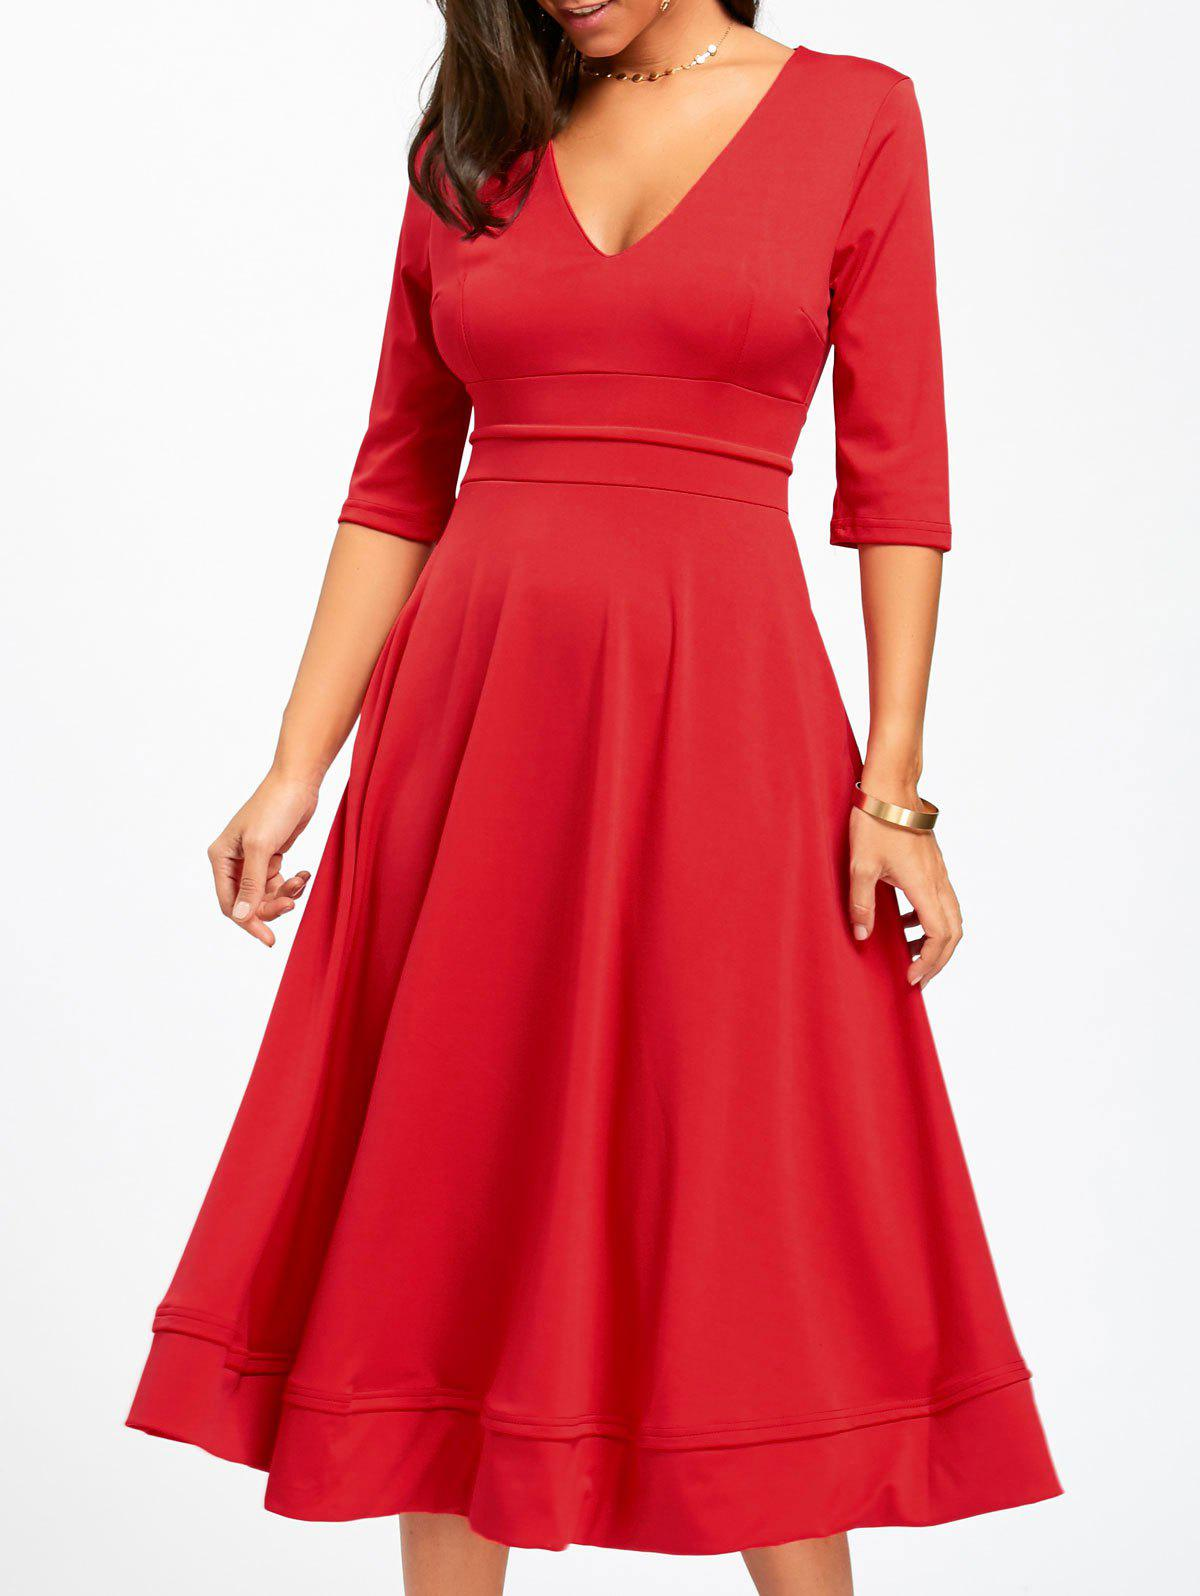 V Neck Fit and Flare Midi Dress - RED S